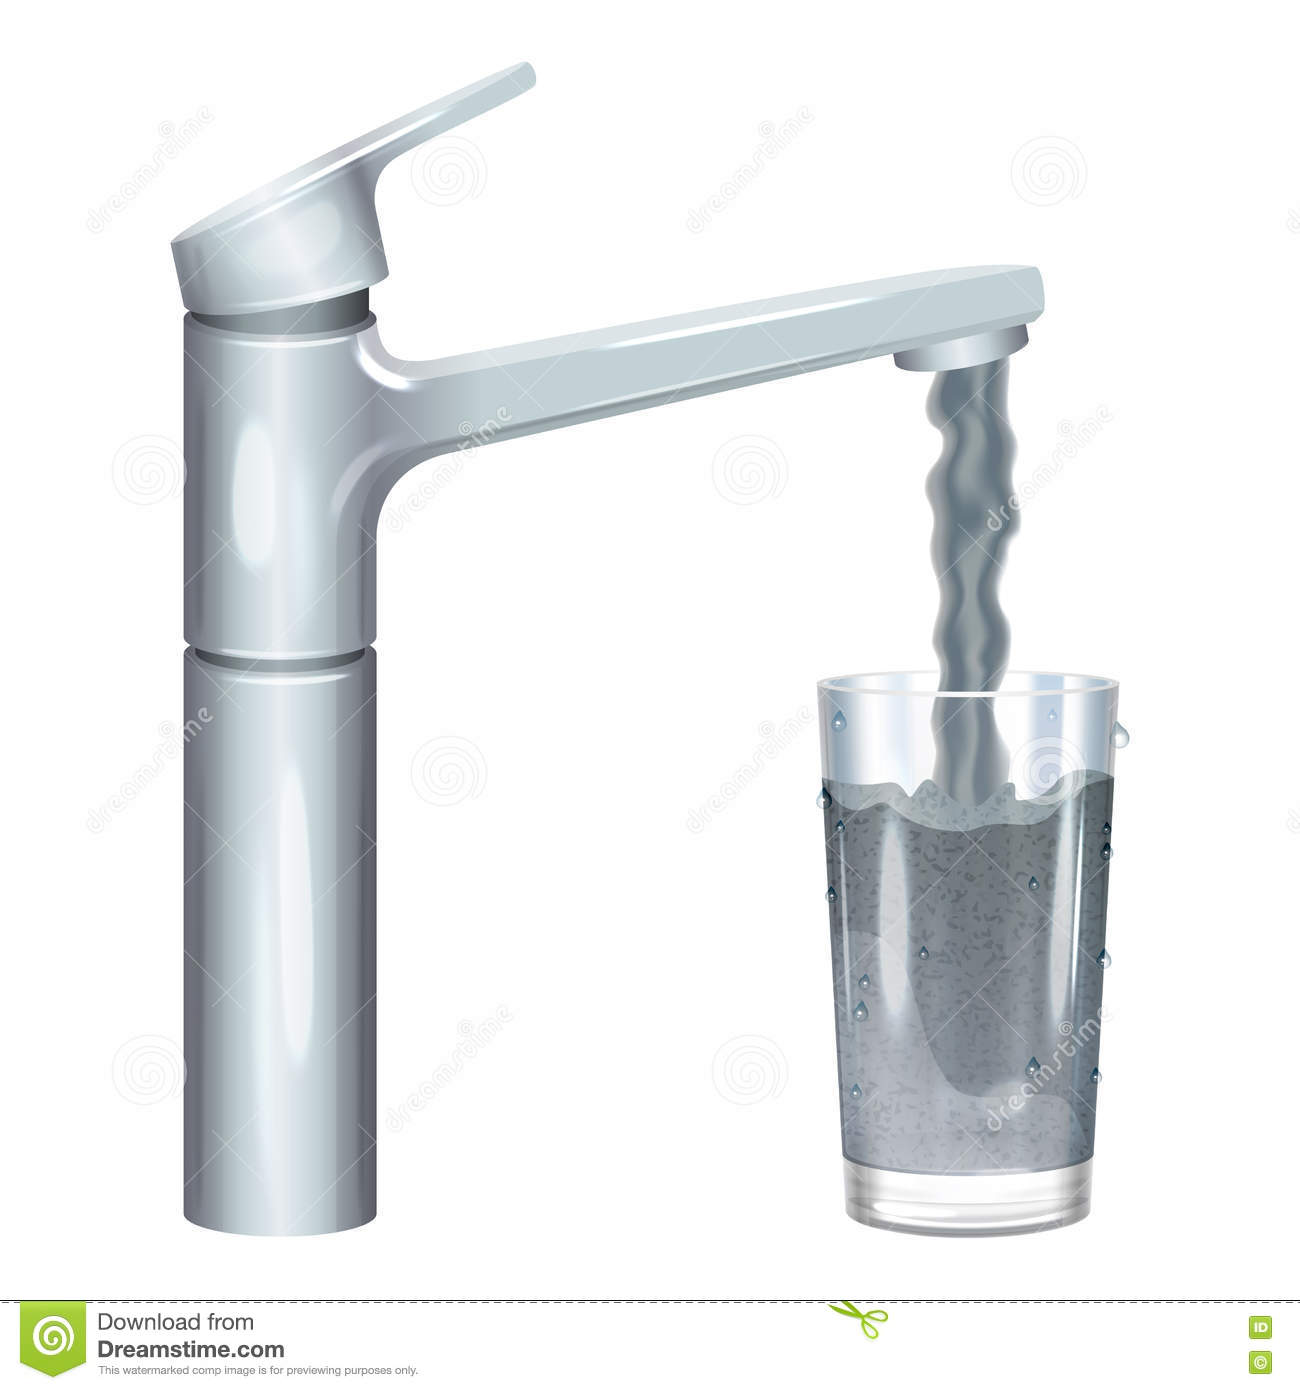 Tap with dirty water, muddy water in glass, pollution concept.